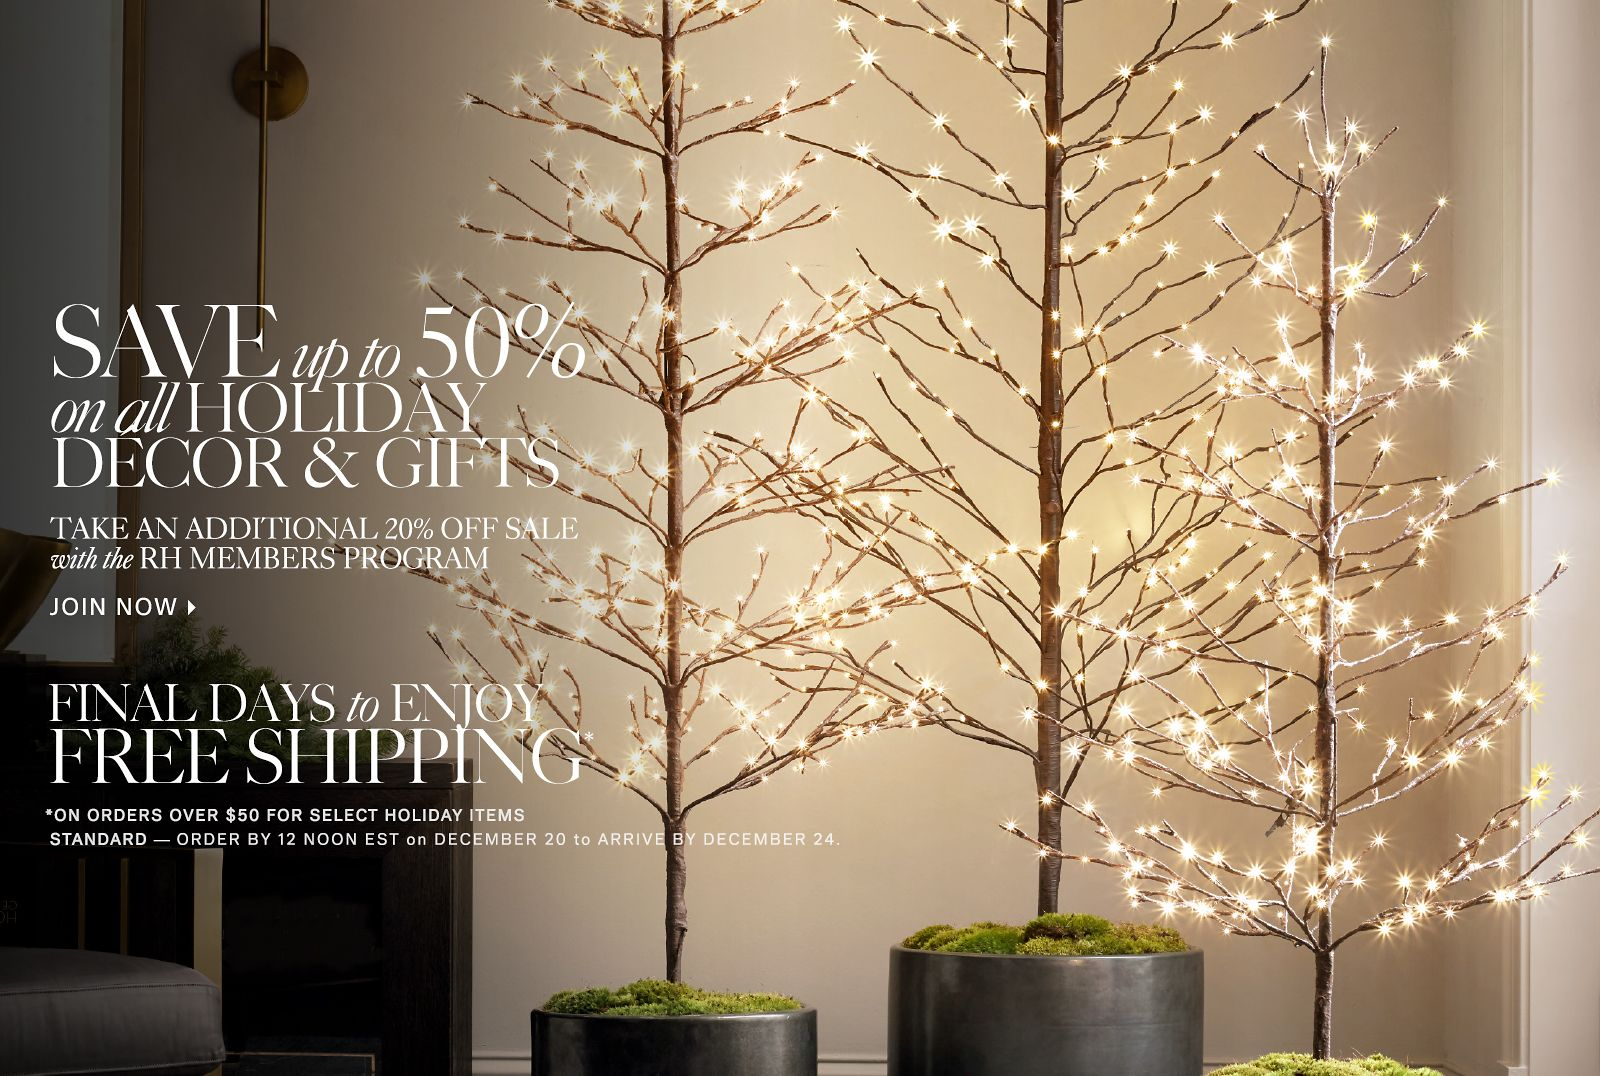 Save up to 50% on Holiday Gifts and Decor